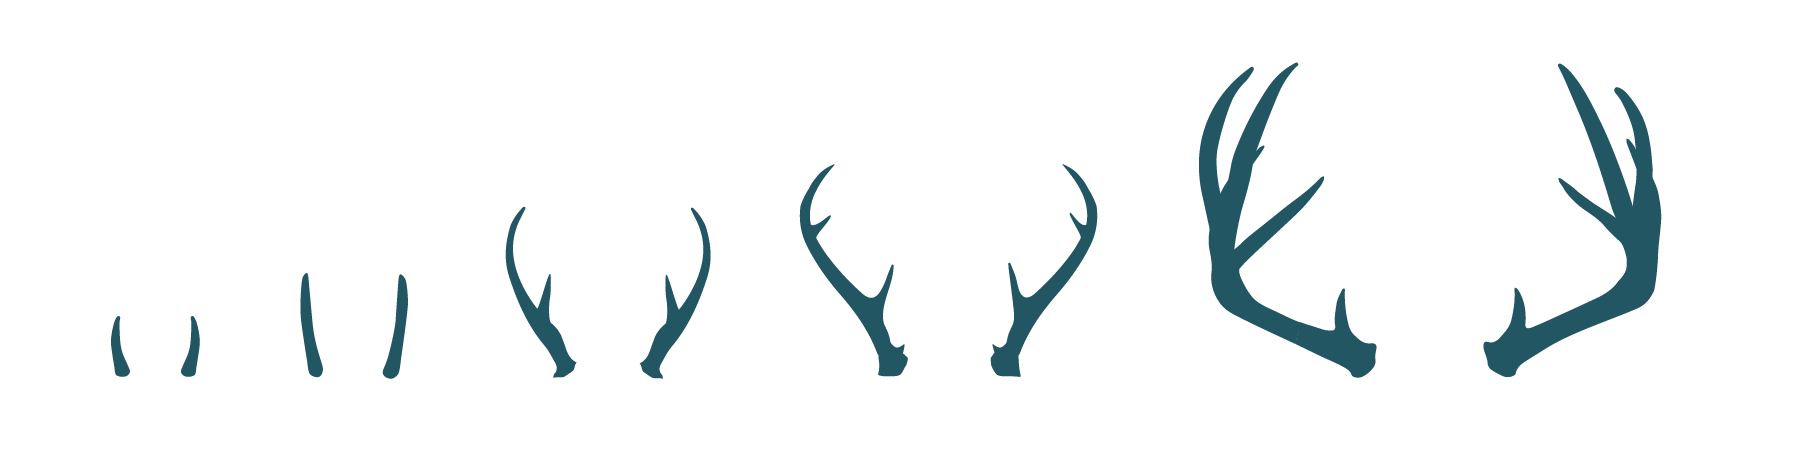 Png antlers. Axe creative group making